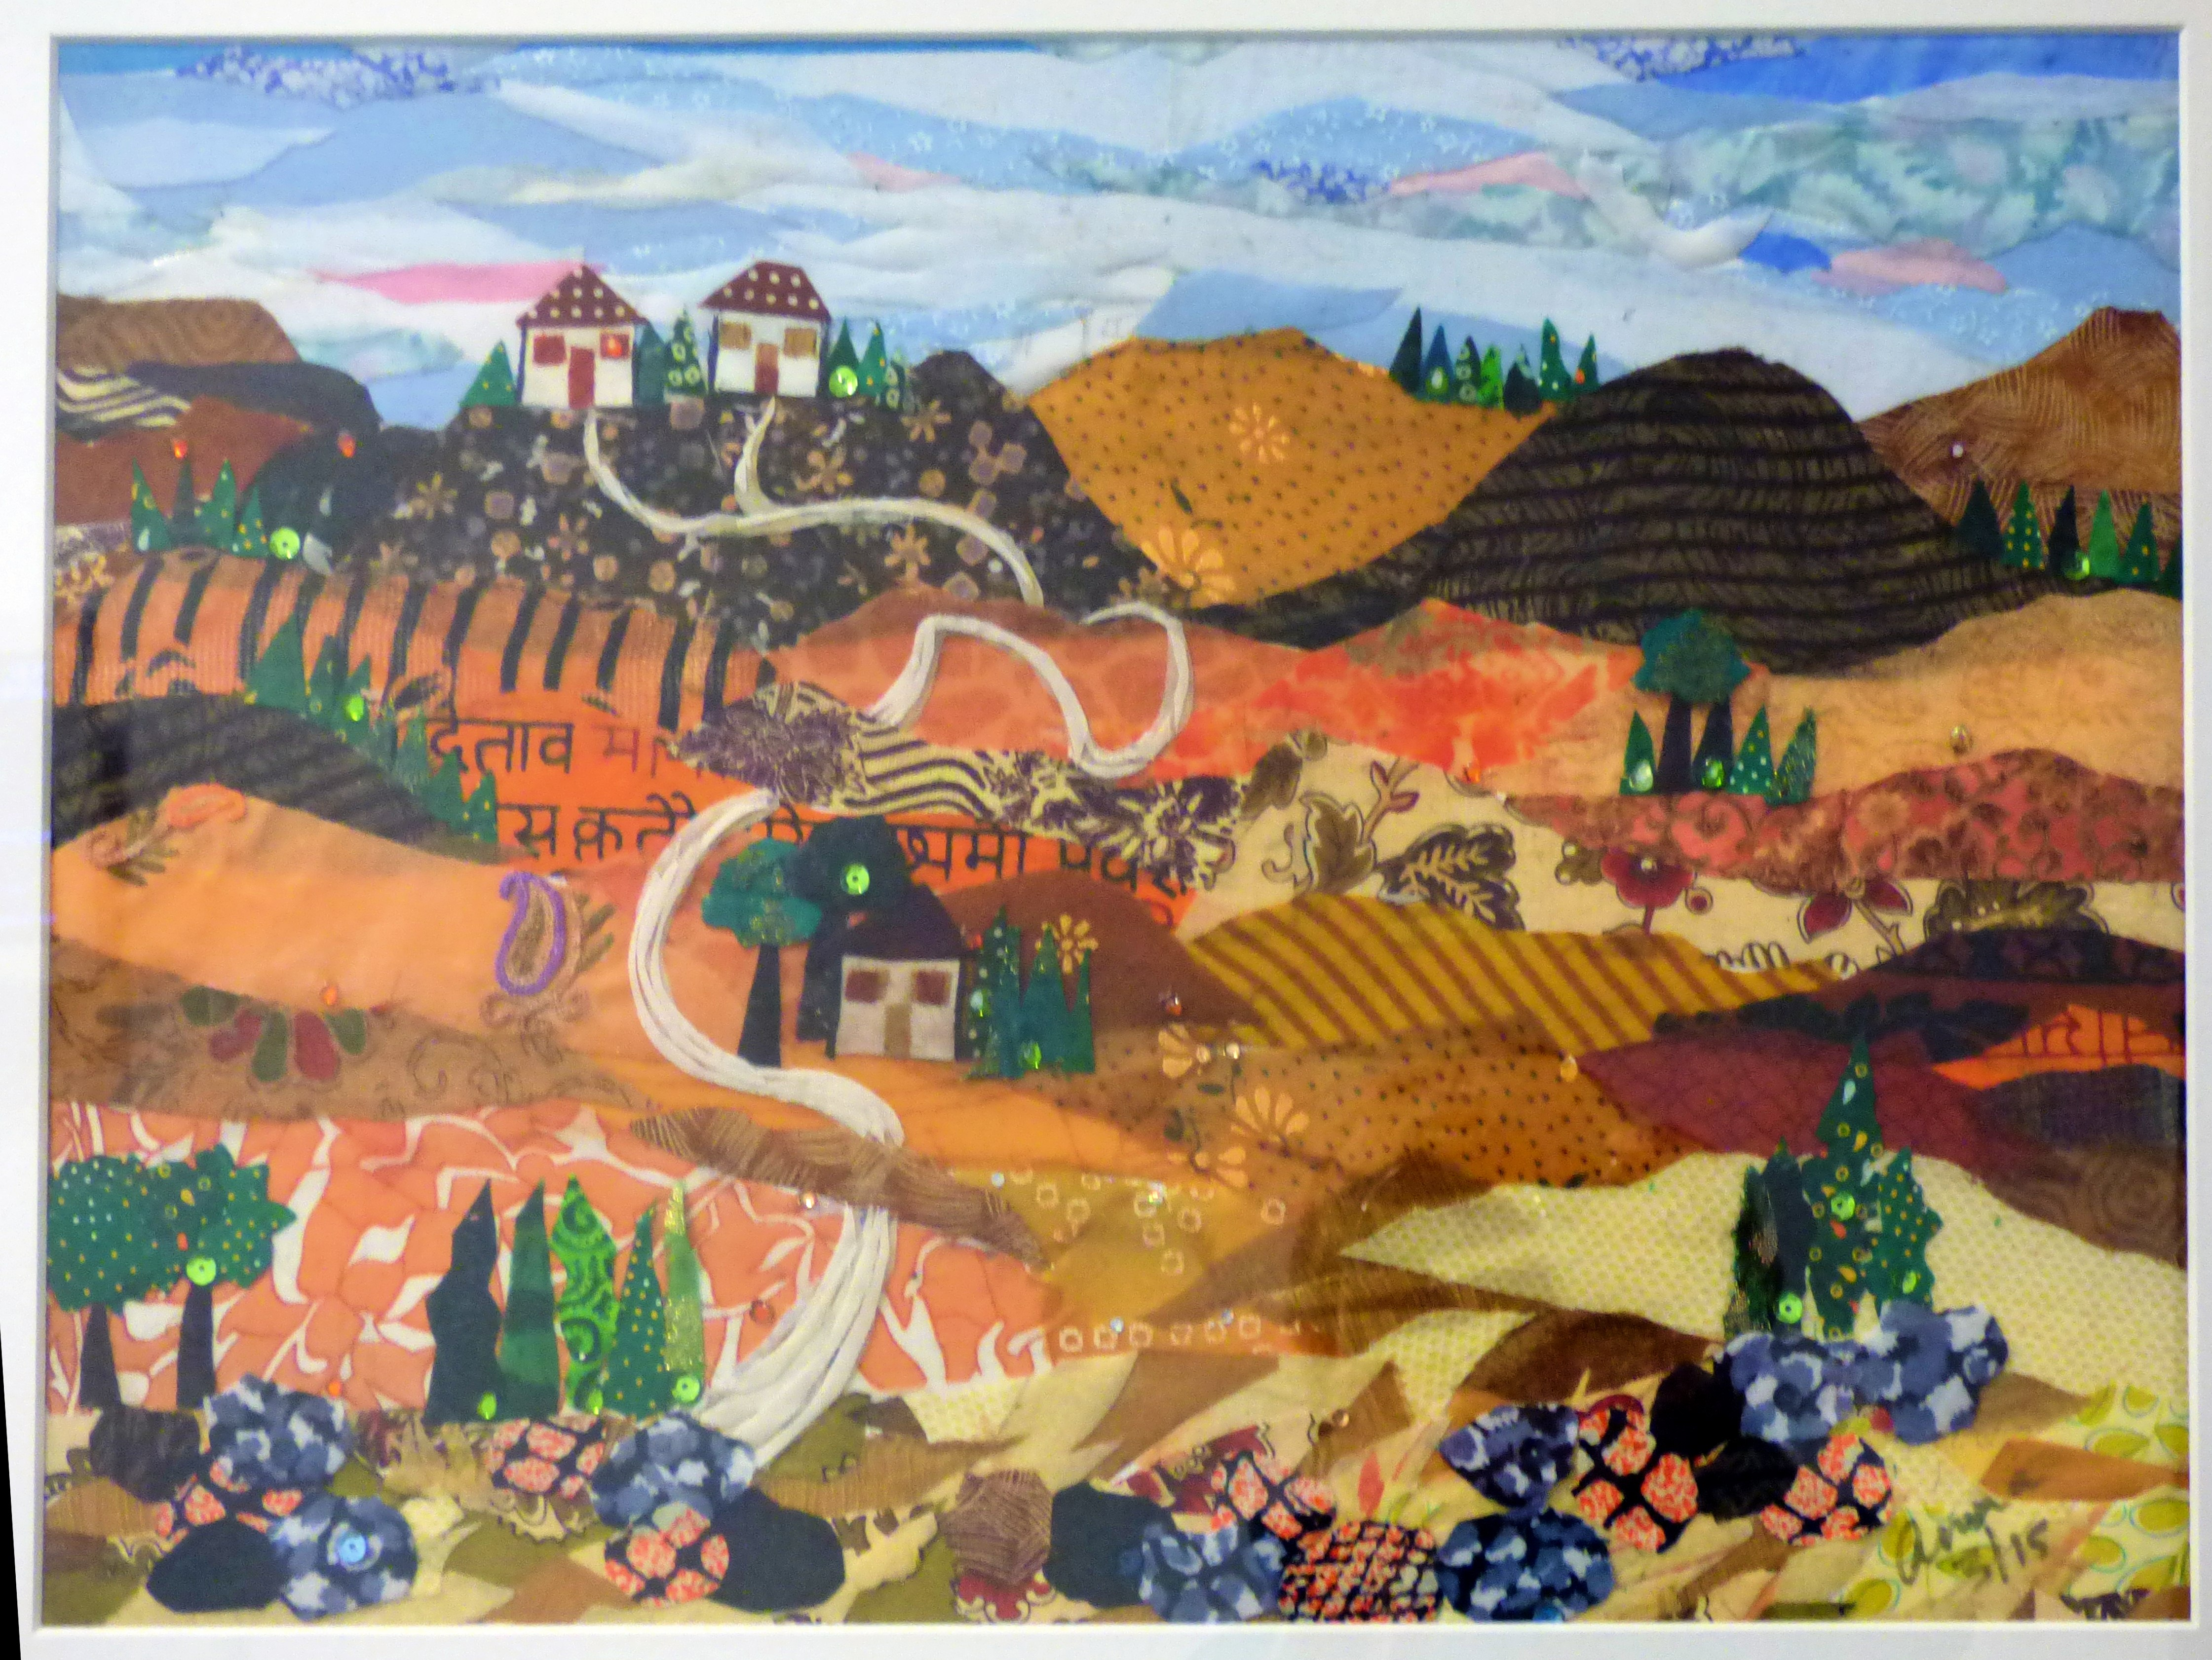 ARE WE THERE YET? by Aruna Mene, fabric collage, Ten Plus @ The Atkinson, 2018